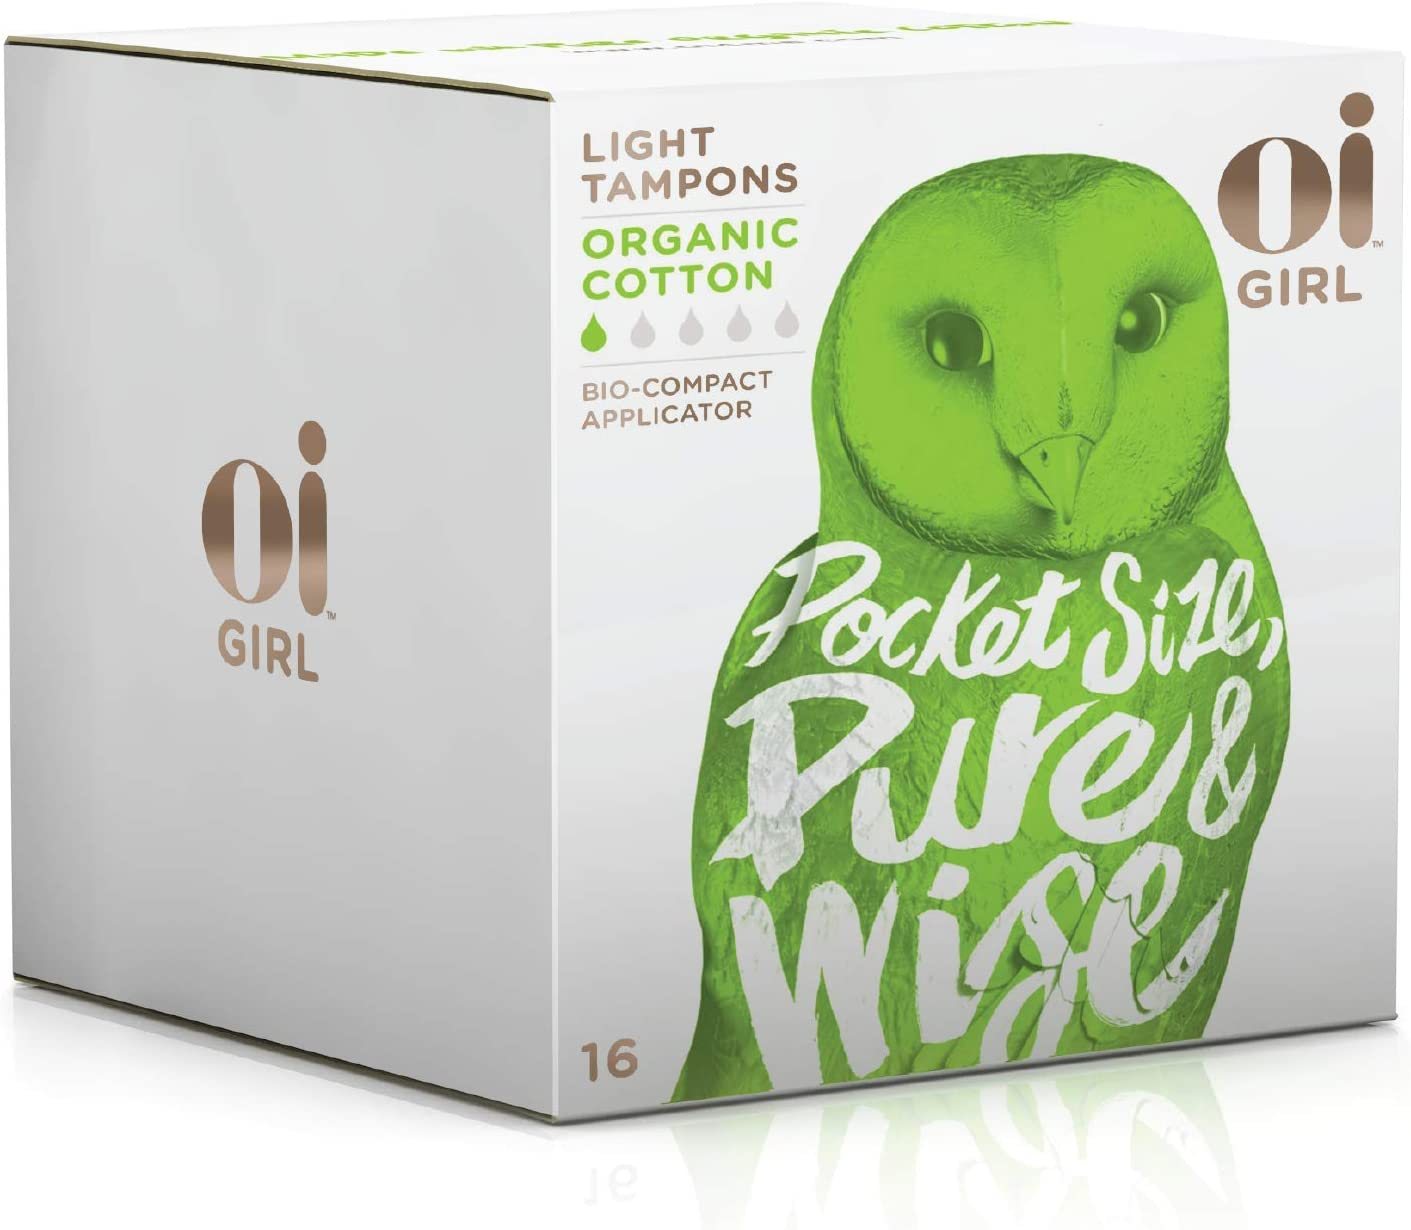 Oi Girl Organic Cotton Tampons